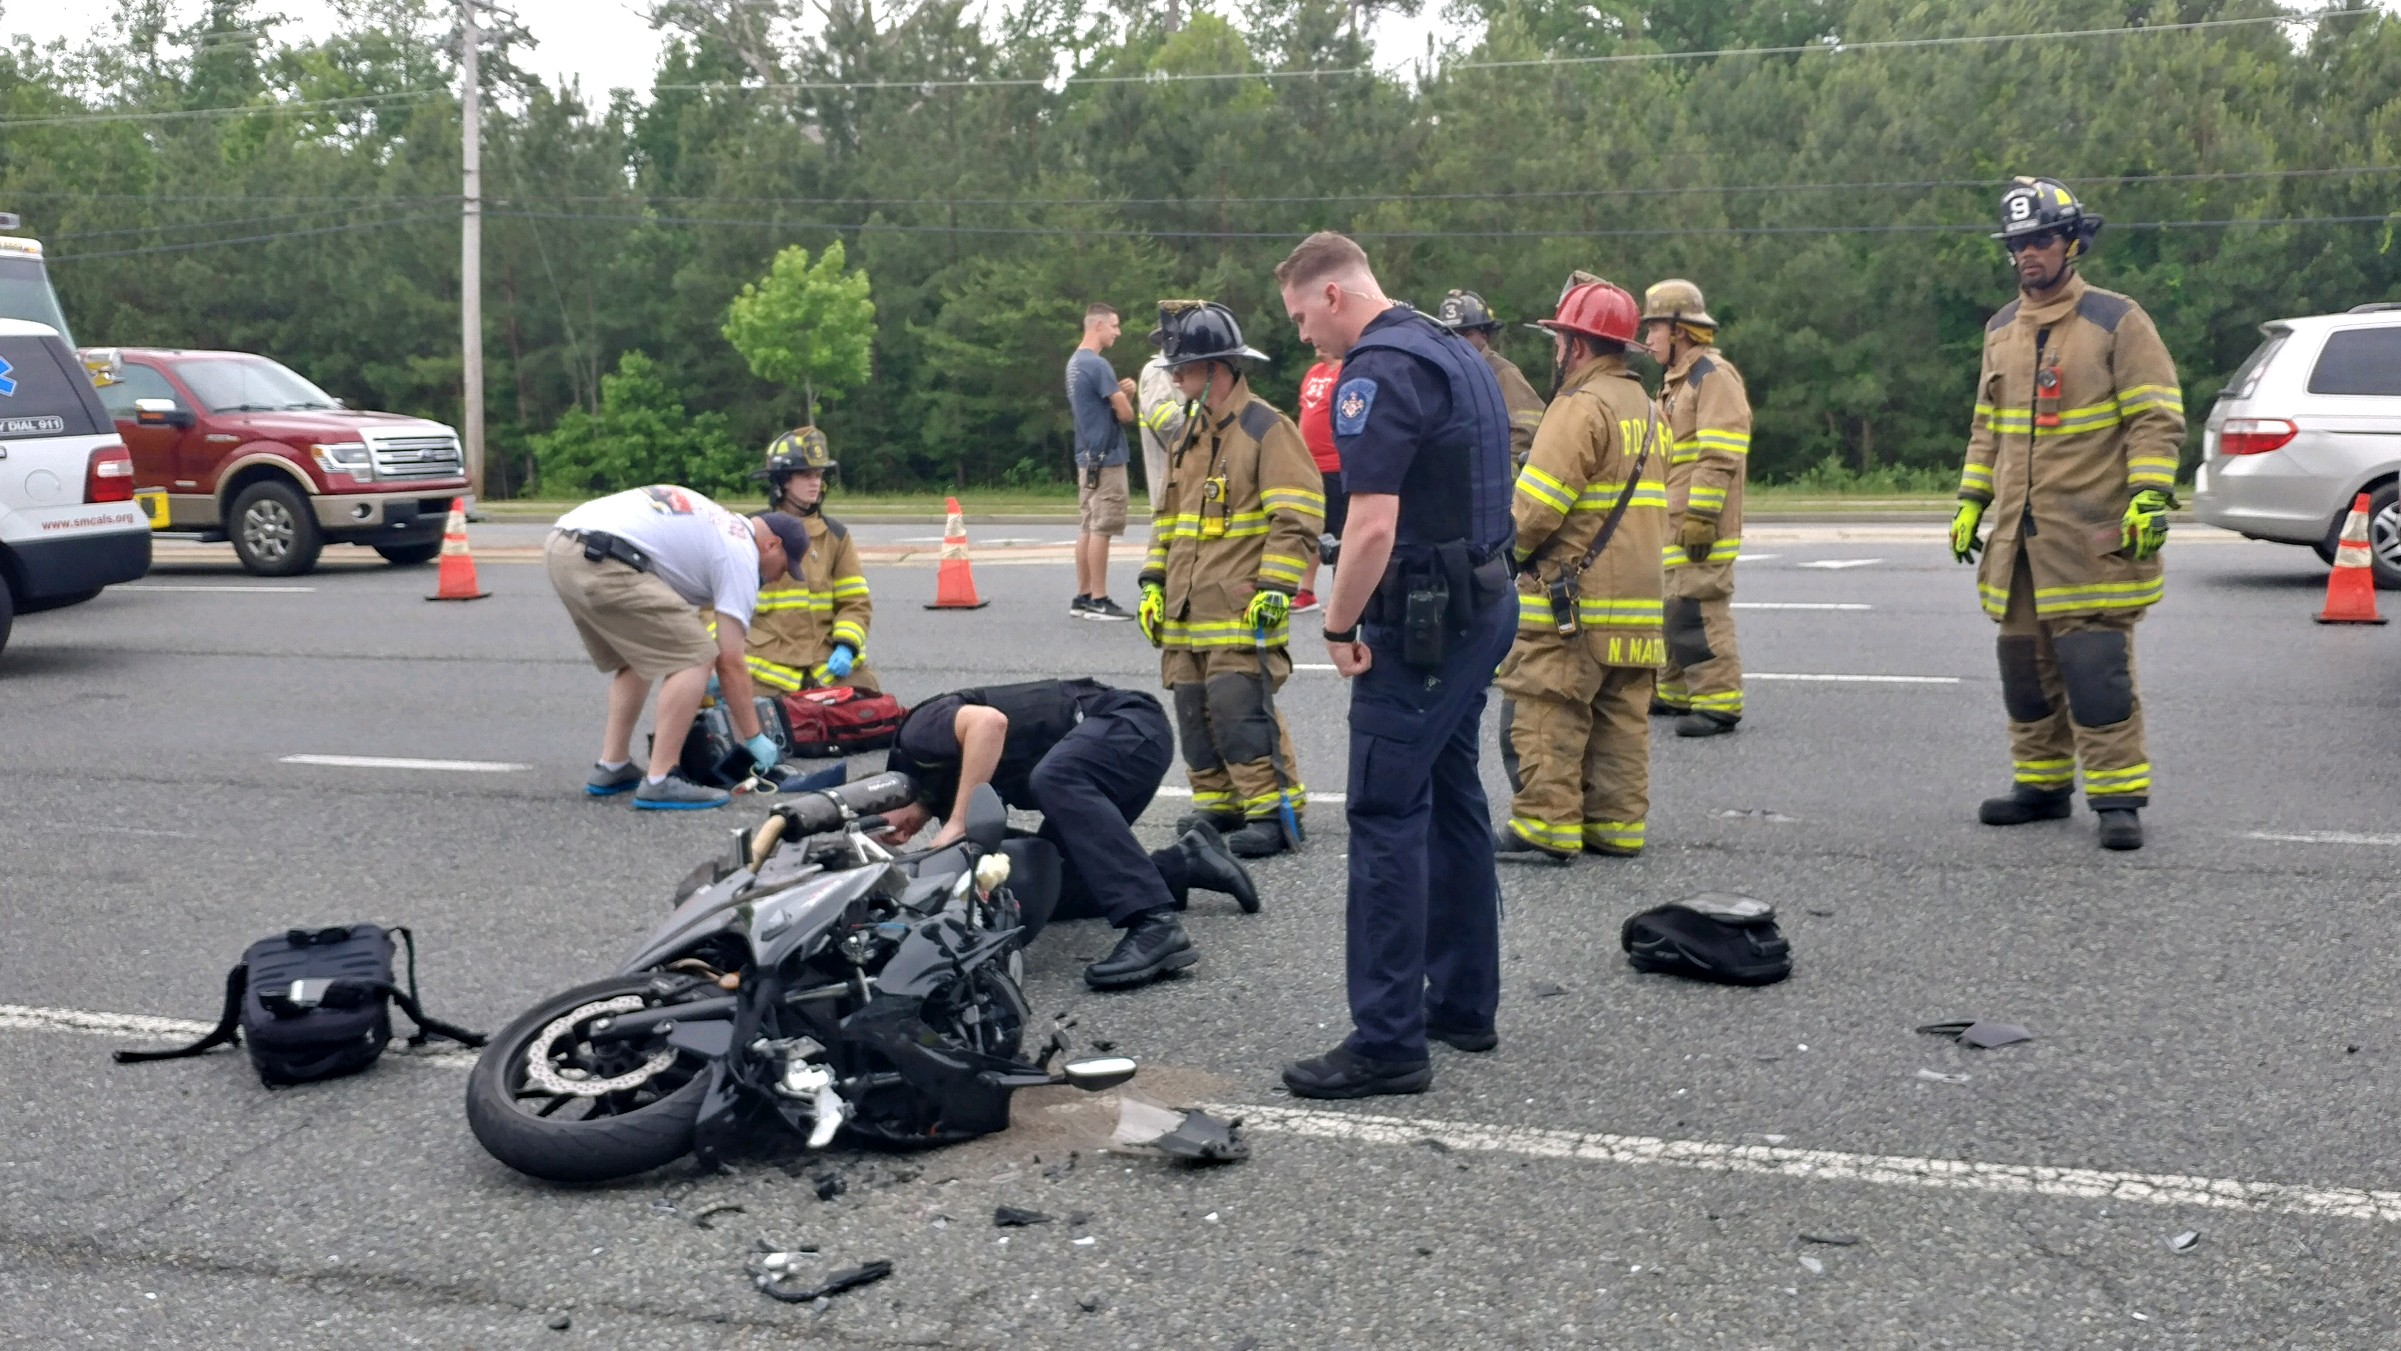 Serious Motor Vehicle Accident Involving a Motorcycle in